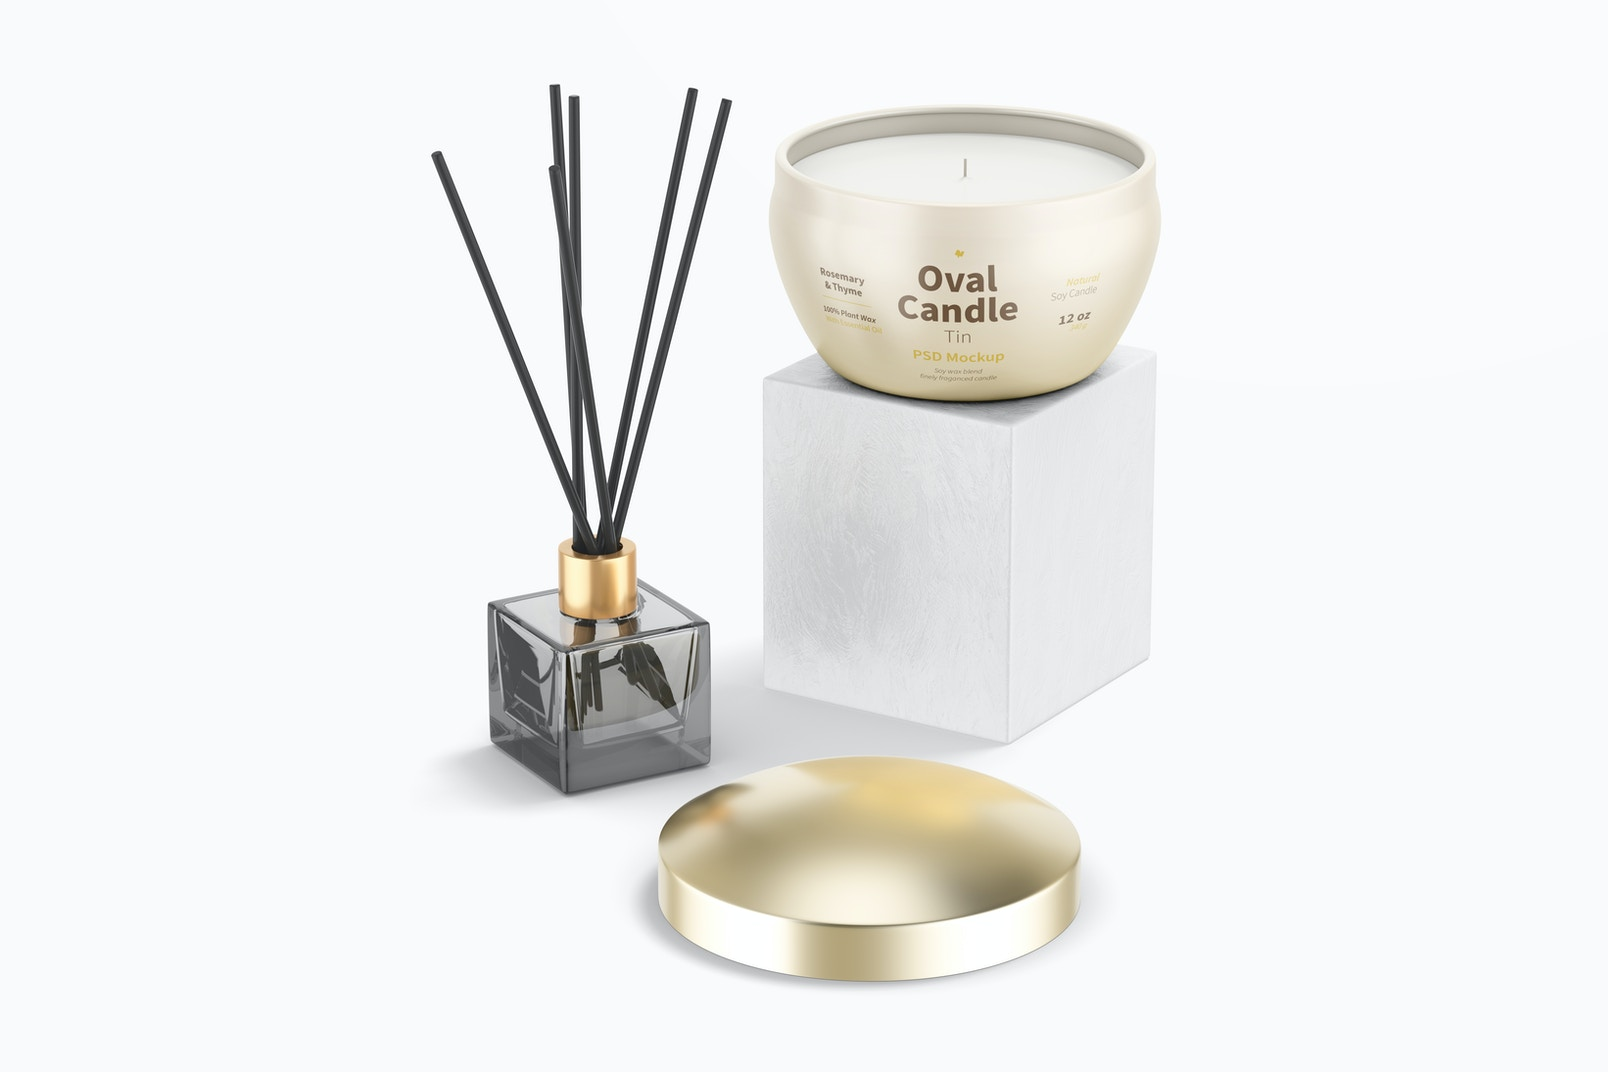 Oval Candle Tin with Diffuser Mockup